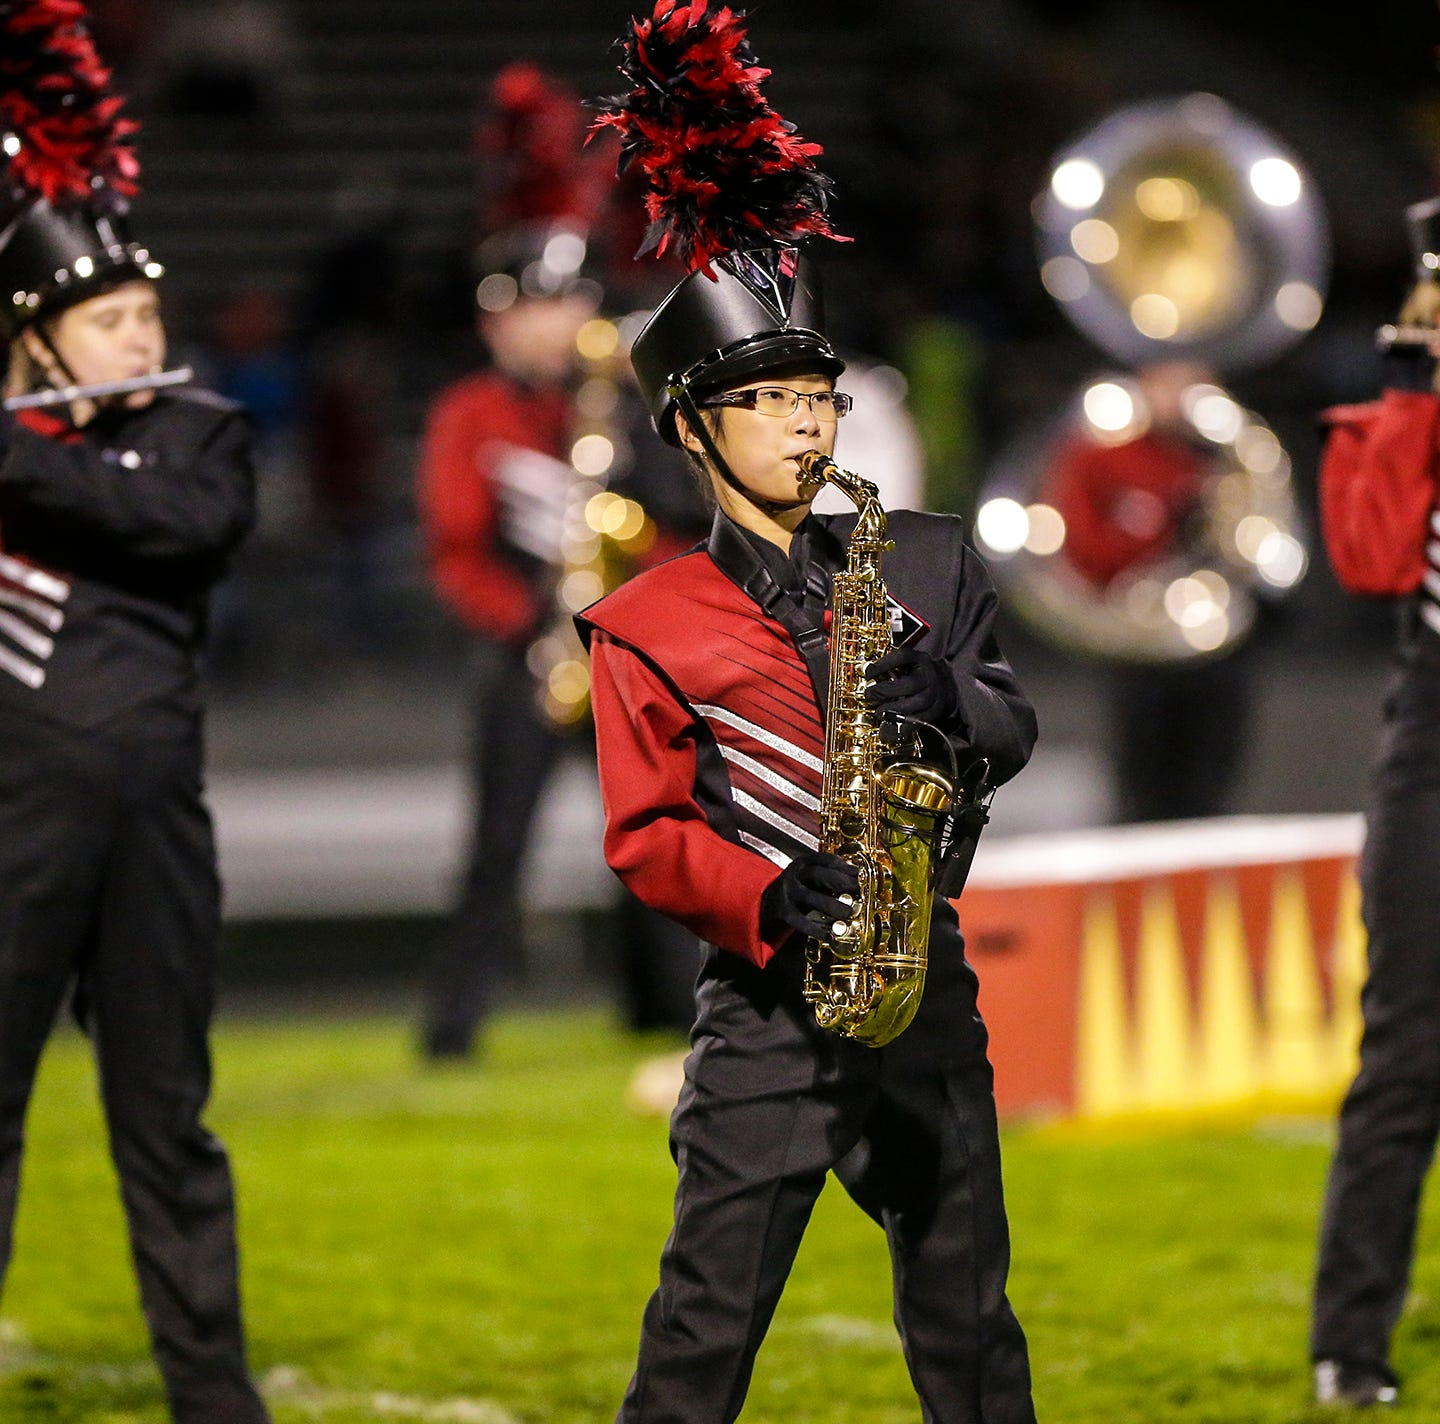 FHS Cardinals' marching band spiffed up with new uniforms, 6 years in the works